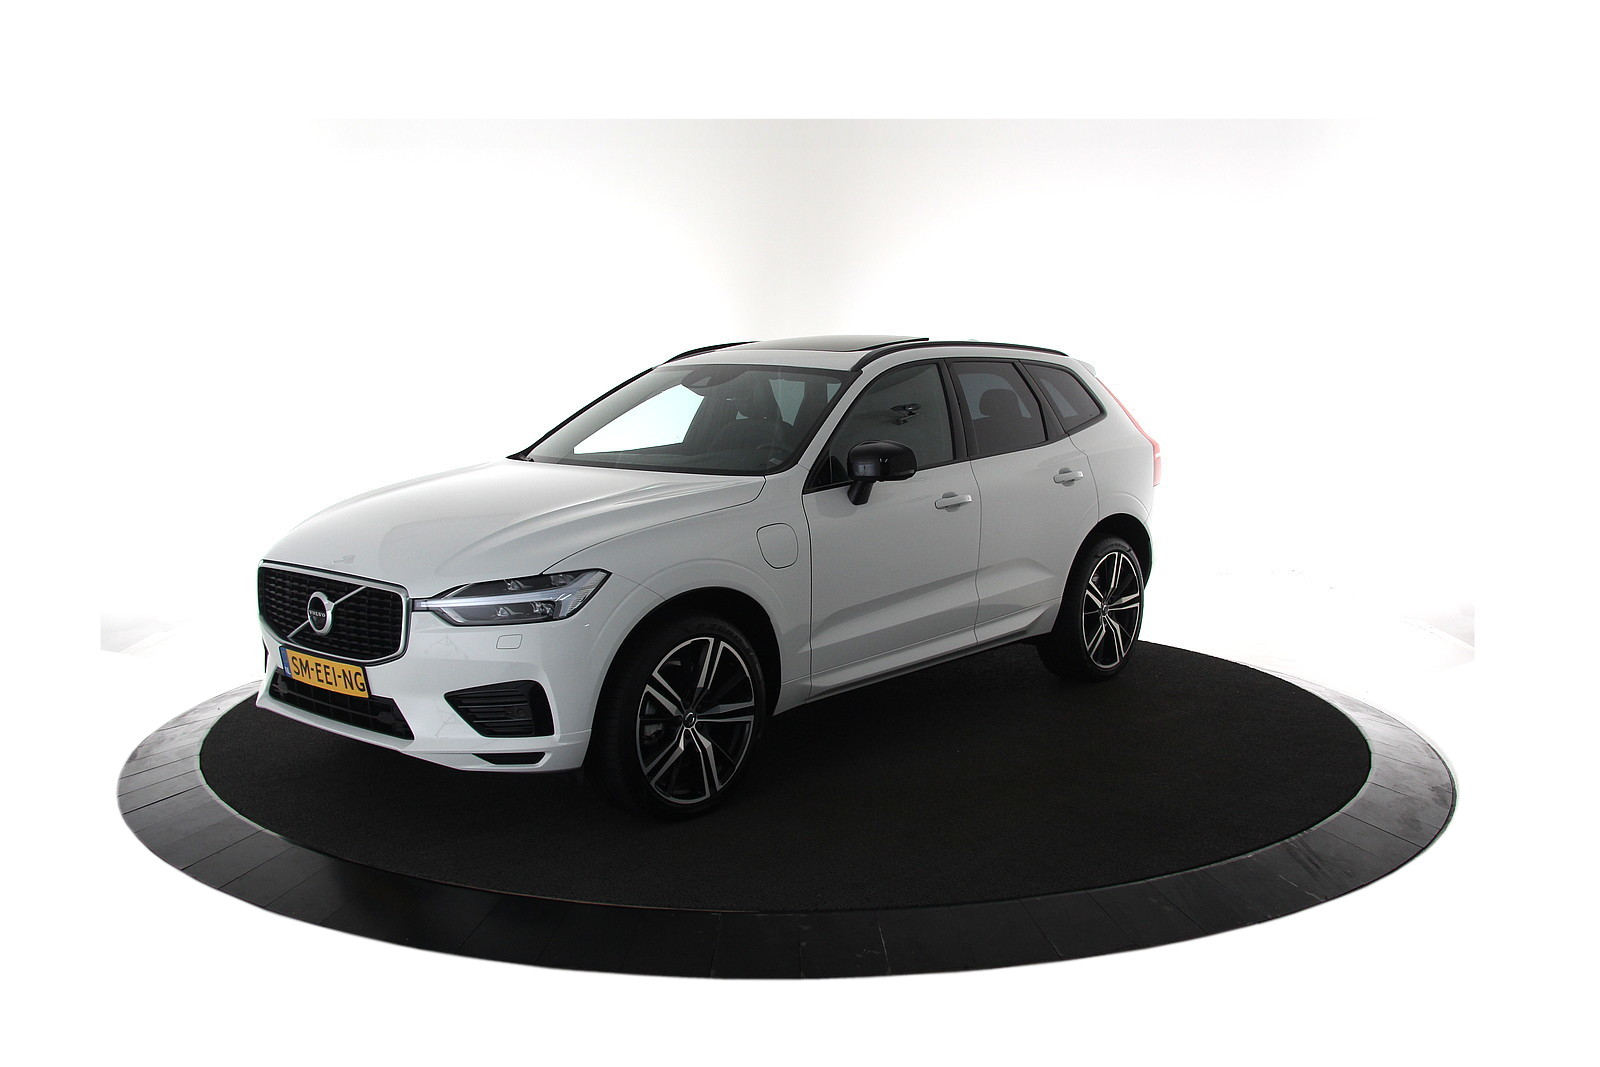 Volvo XC60 2.0 T8 Twin Engine AWD R-Design EX BTW